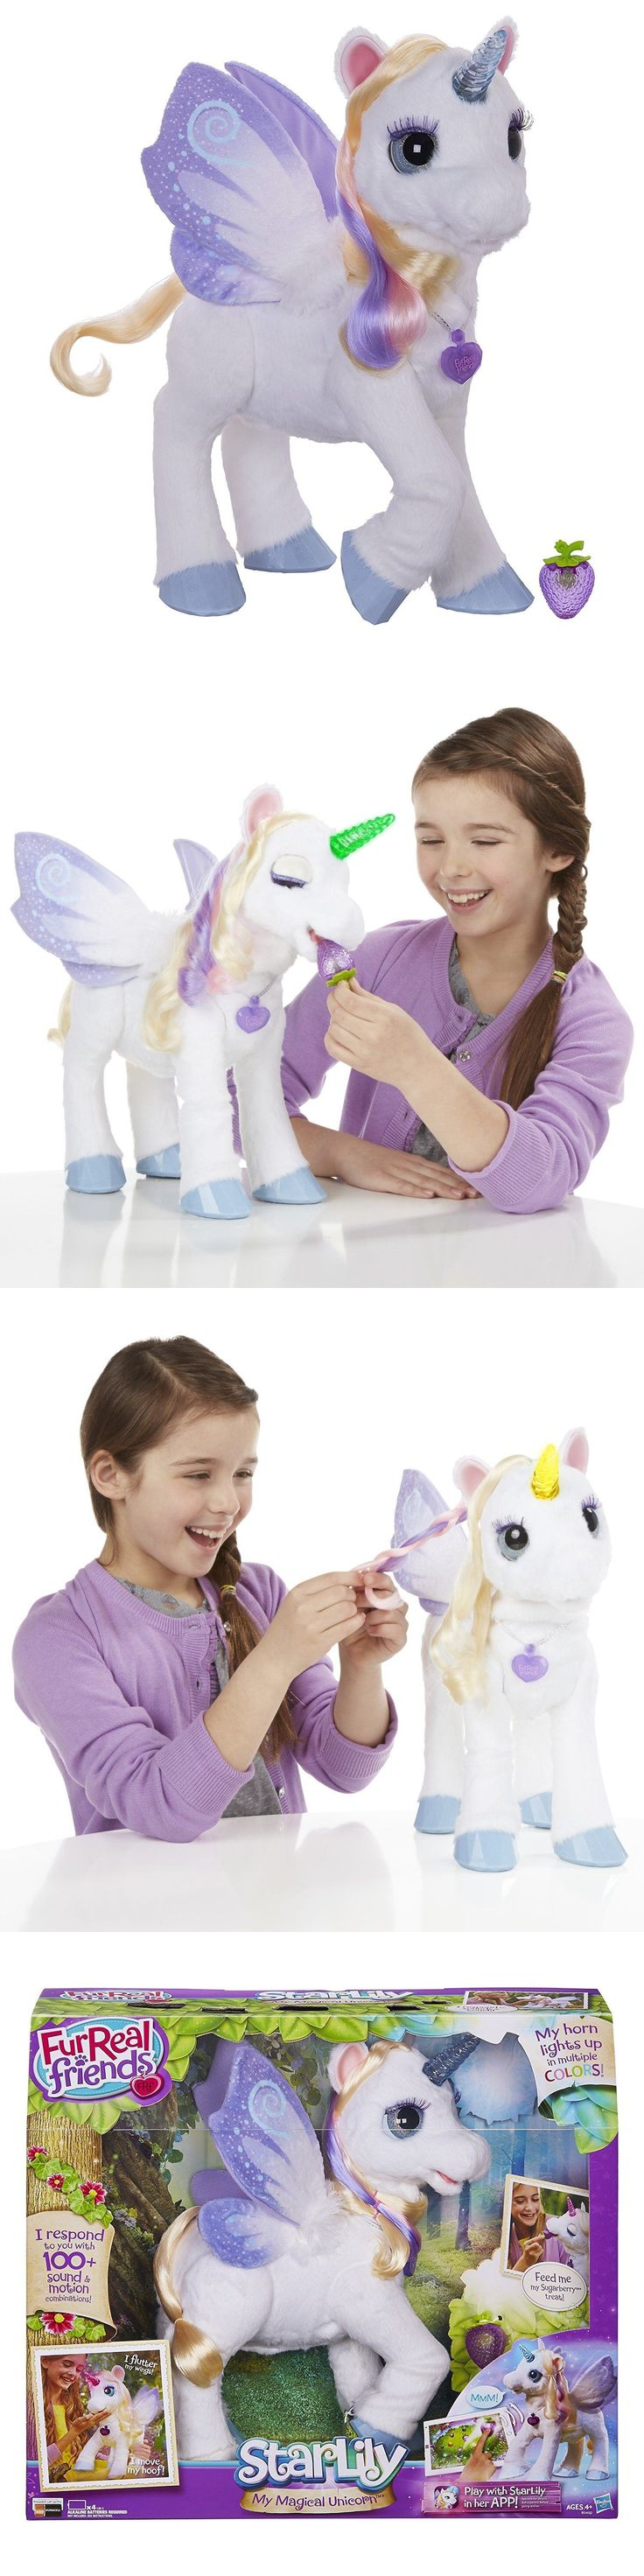 FurReal Friends 38288: Furreal Friends Star Lily My Magical Unicorn 100+ Responses Giggles Wiggles New -> BUY IT NOW ONLY: $98.99 on eBay!